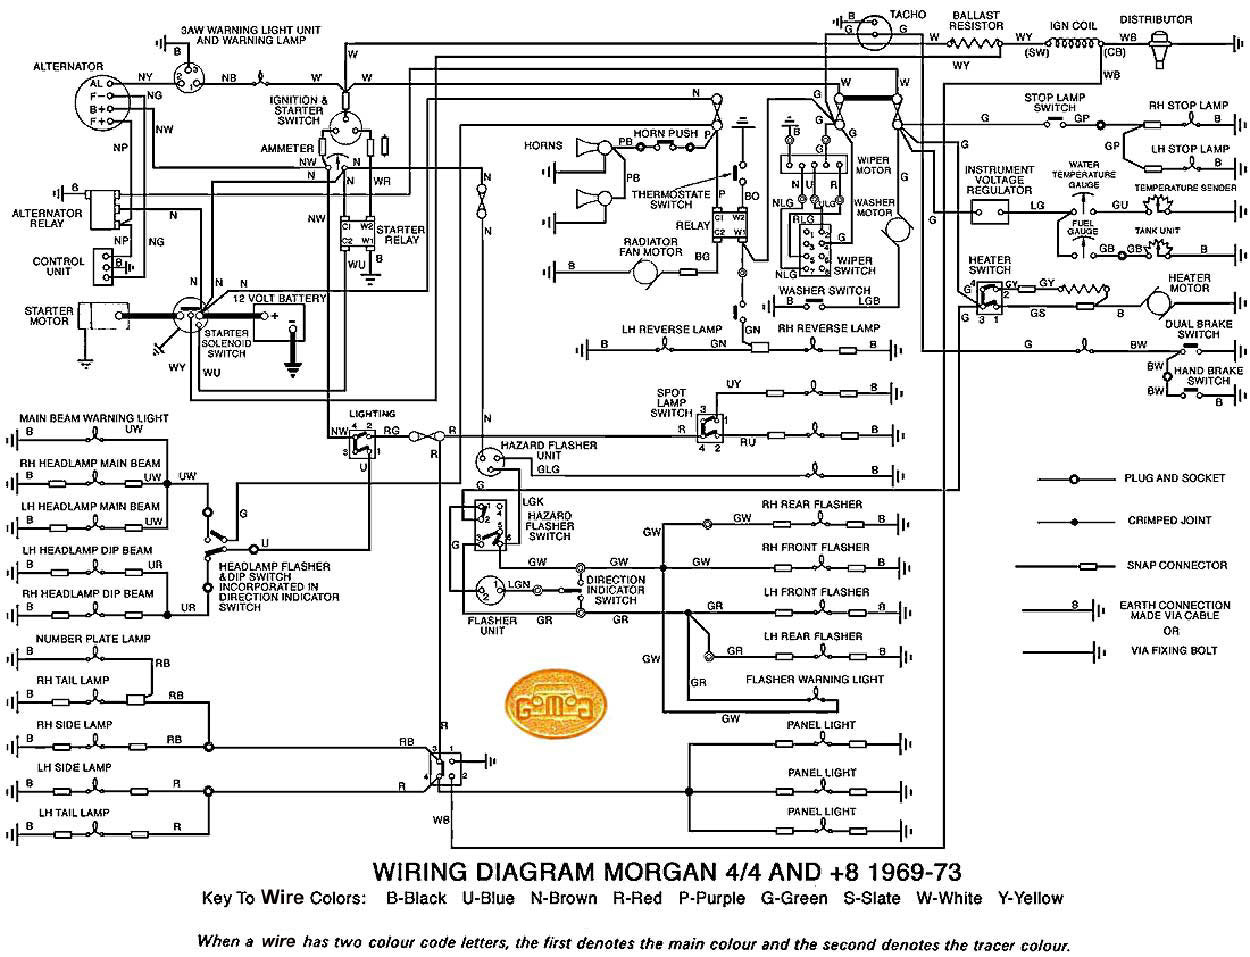 1969 Mustang Fuse Wiring Diagram Manual Of Ford Box Headlight 37